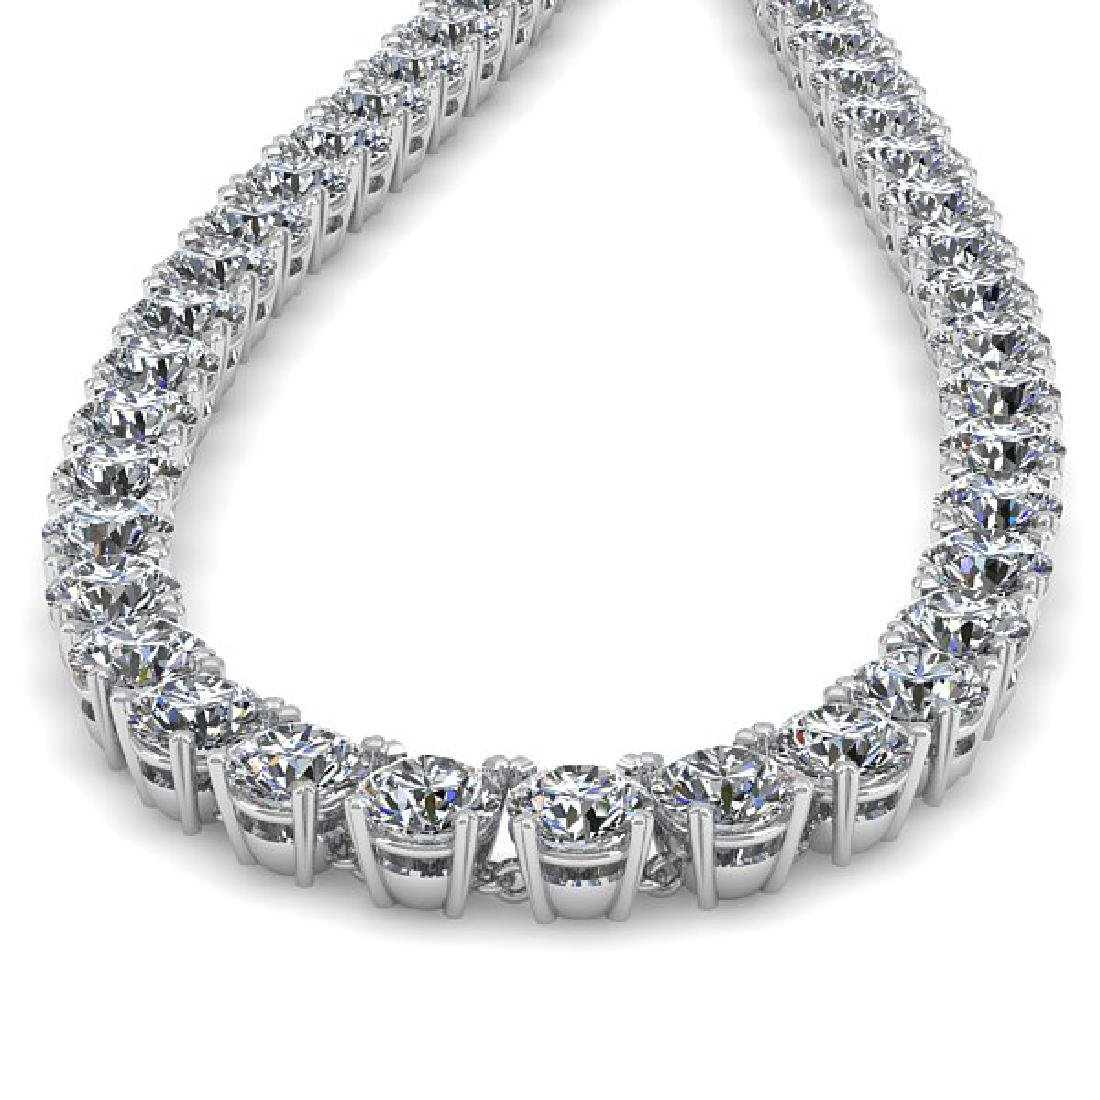 38 CTW Certified SI Diamond Necklace 14K White Gold - 2